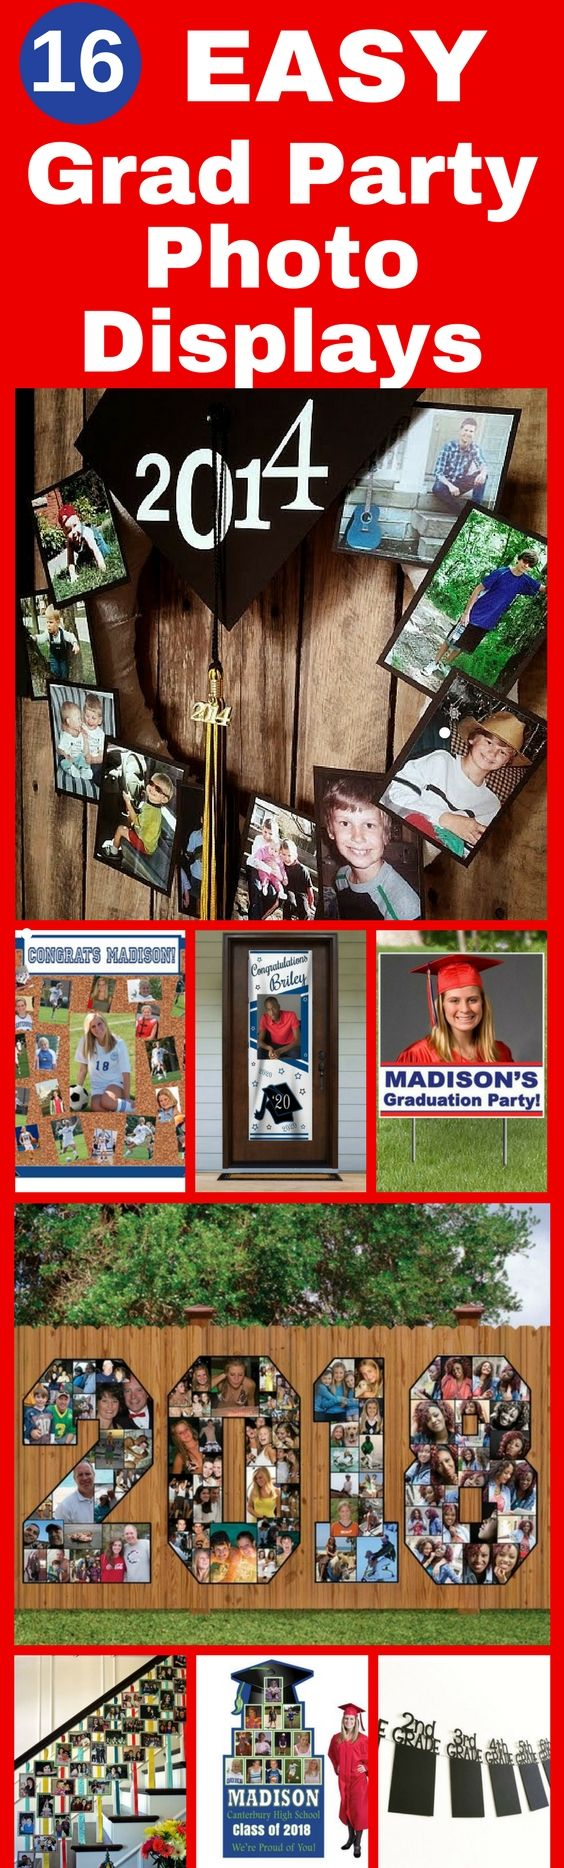 Simple Graduation Party Photo Ad Ideas That Impress Your Guests